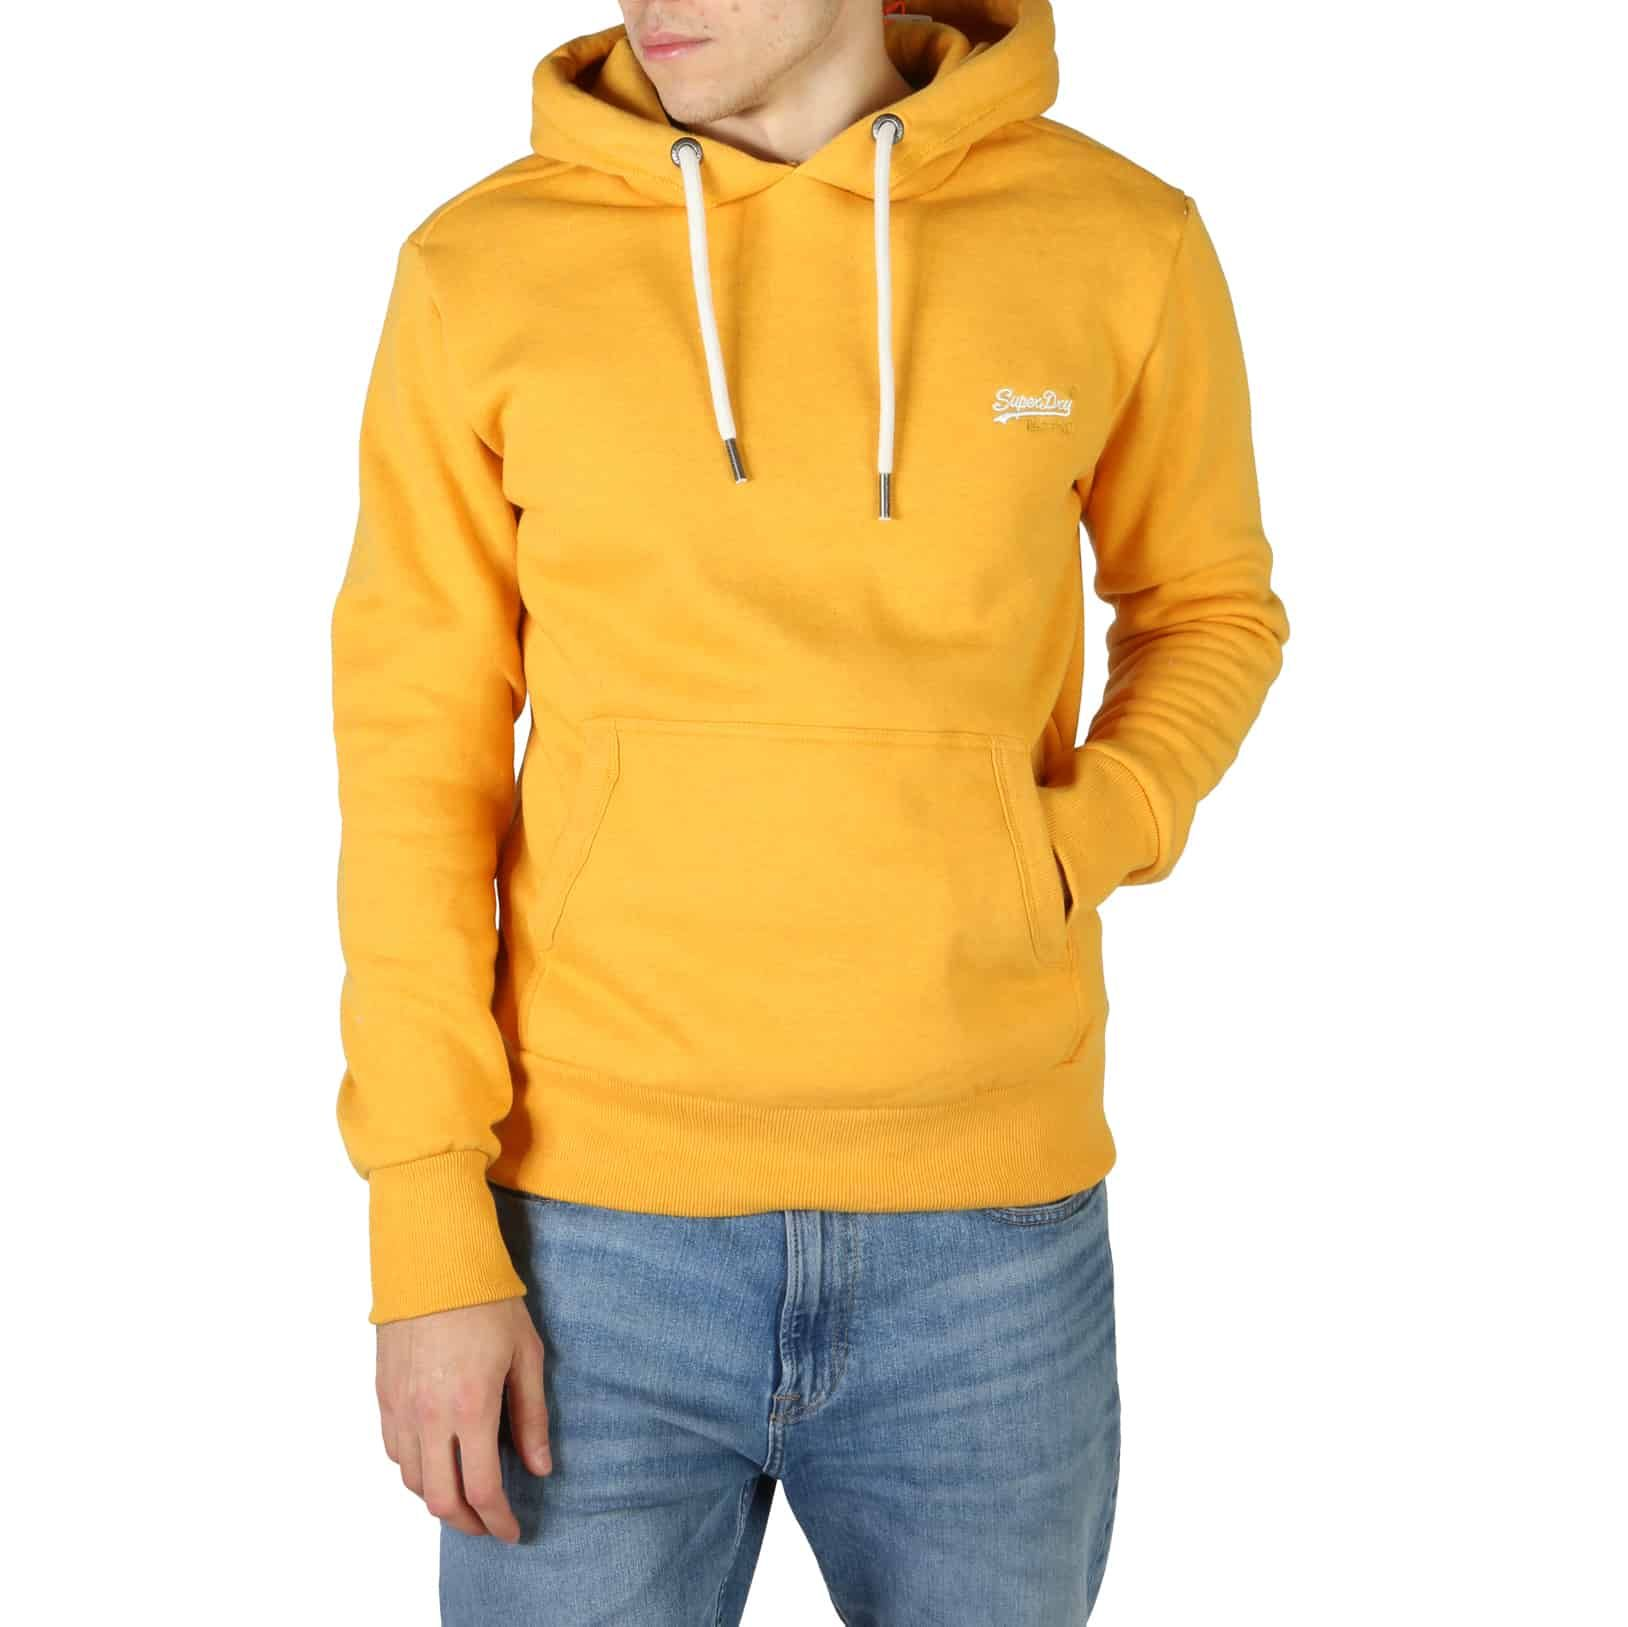 Superdry – M2010265A